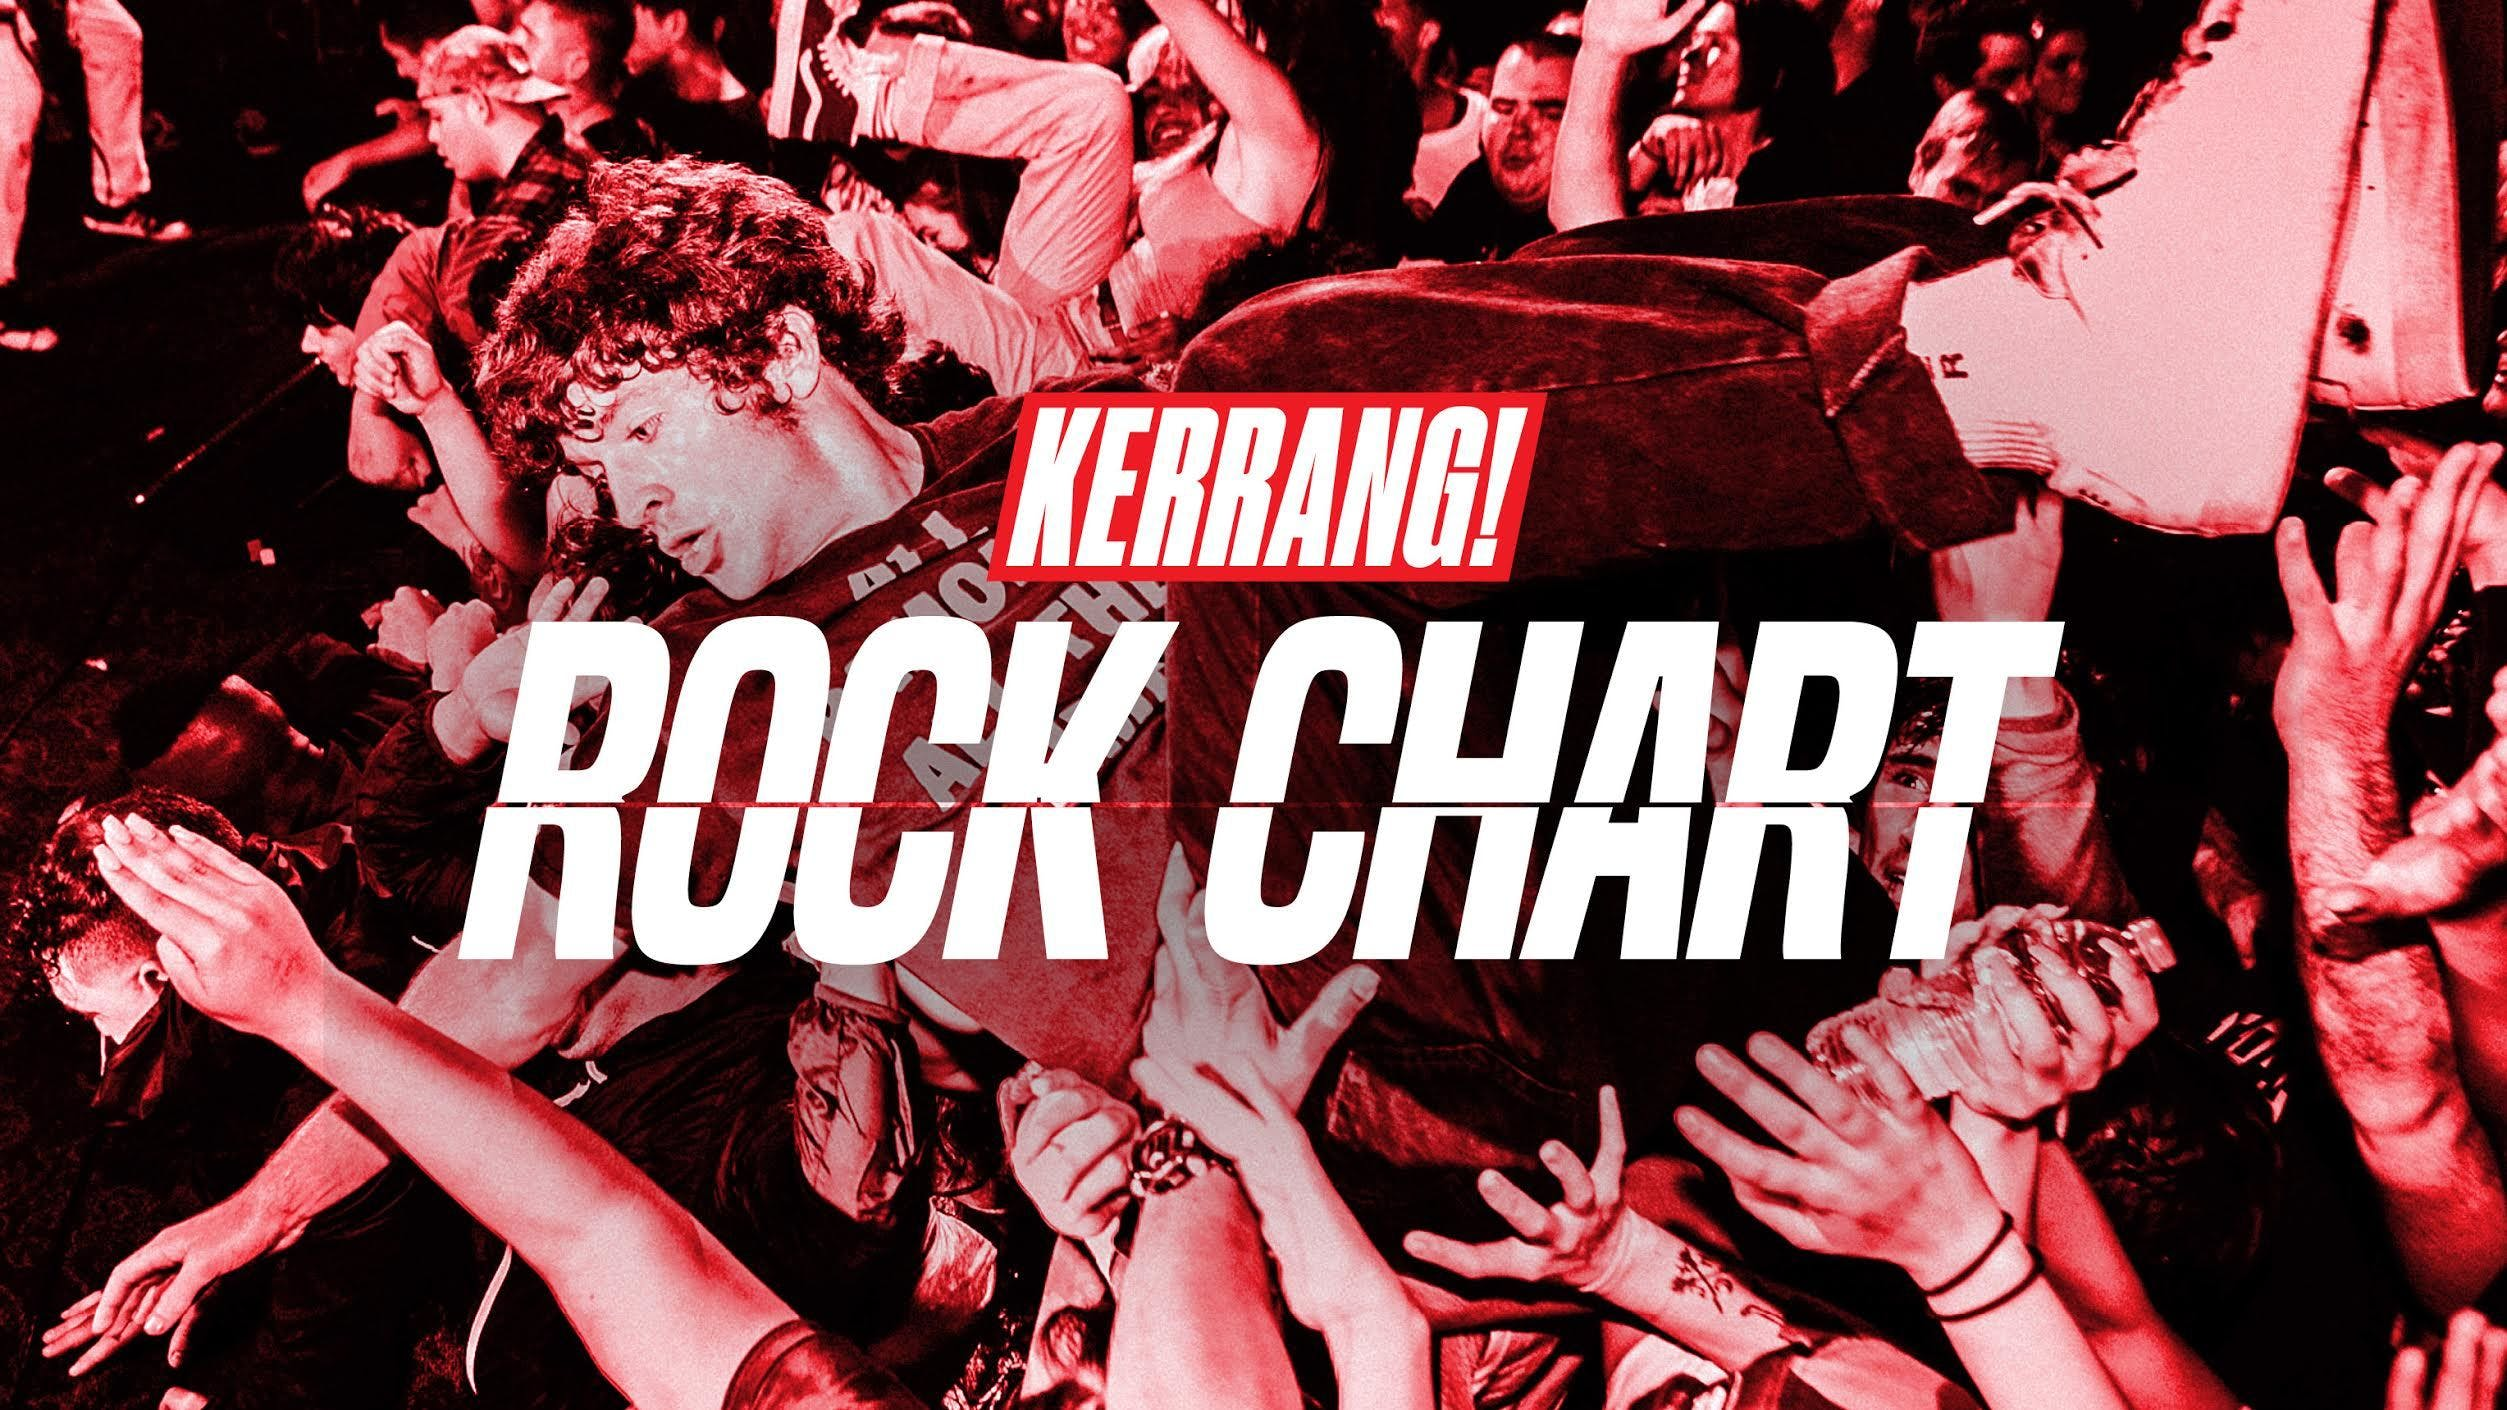 The Kerrang! Rock Chart